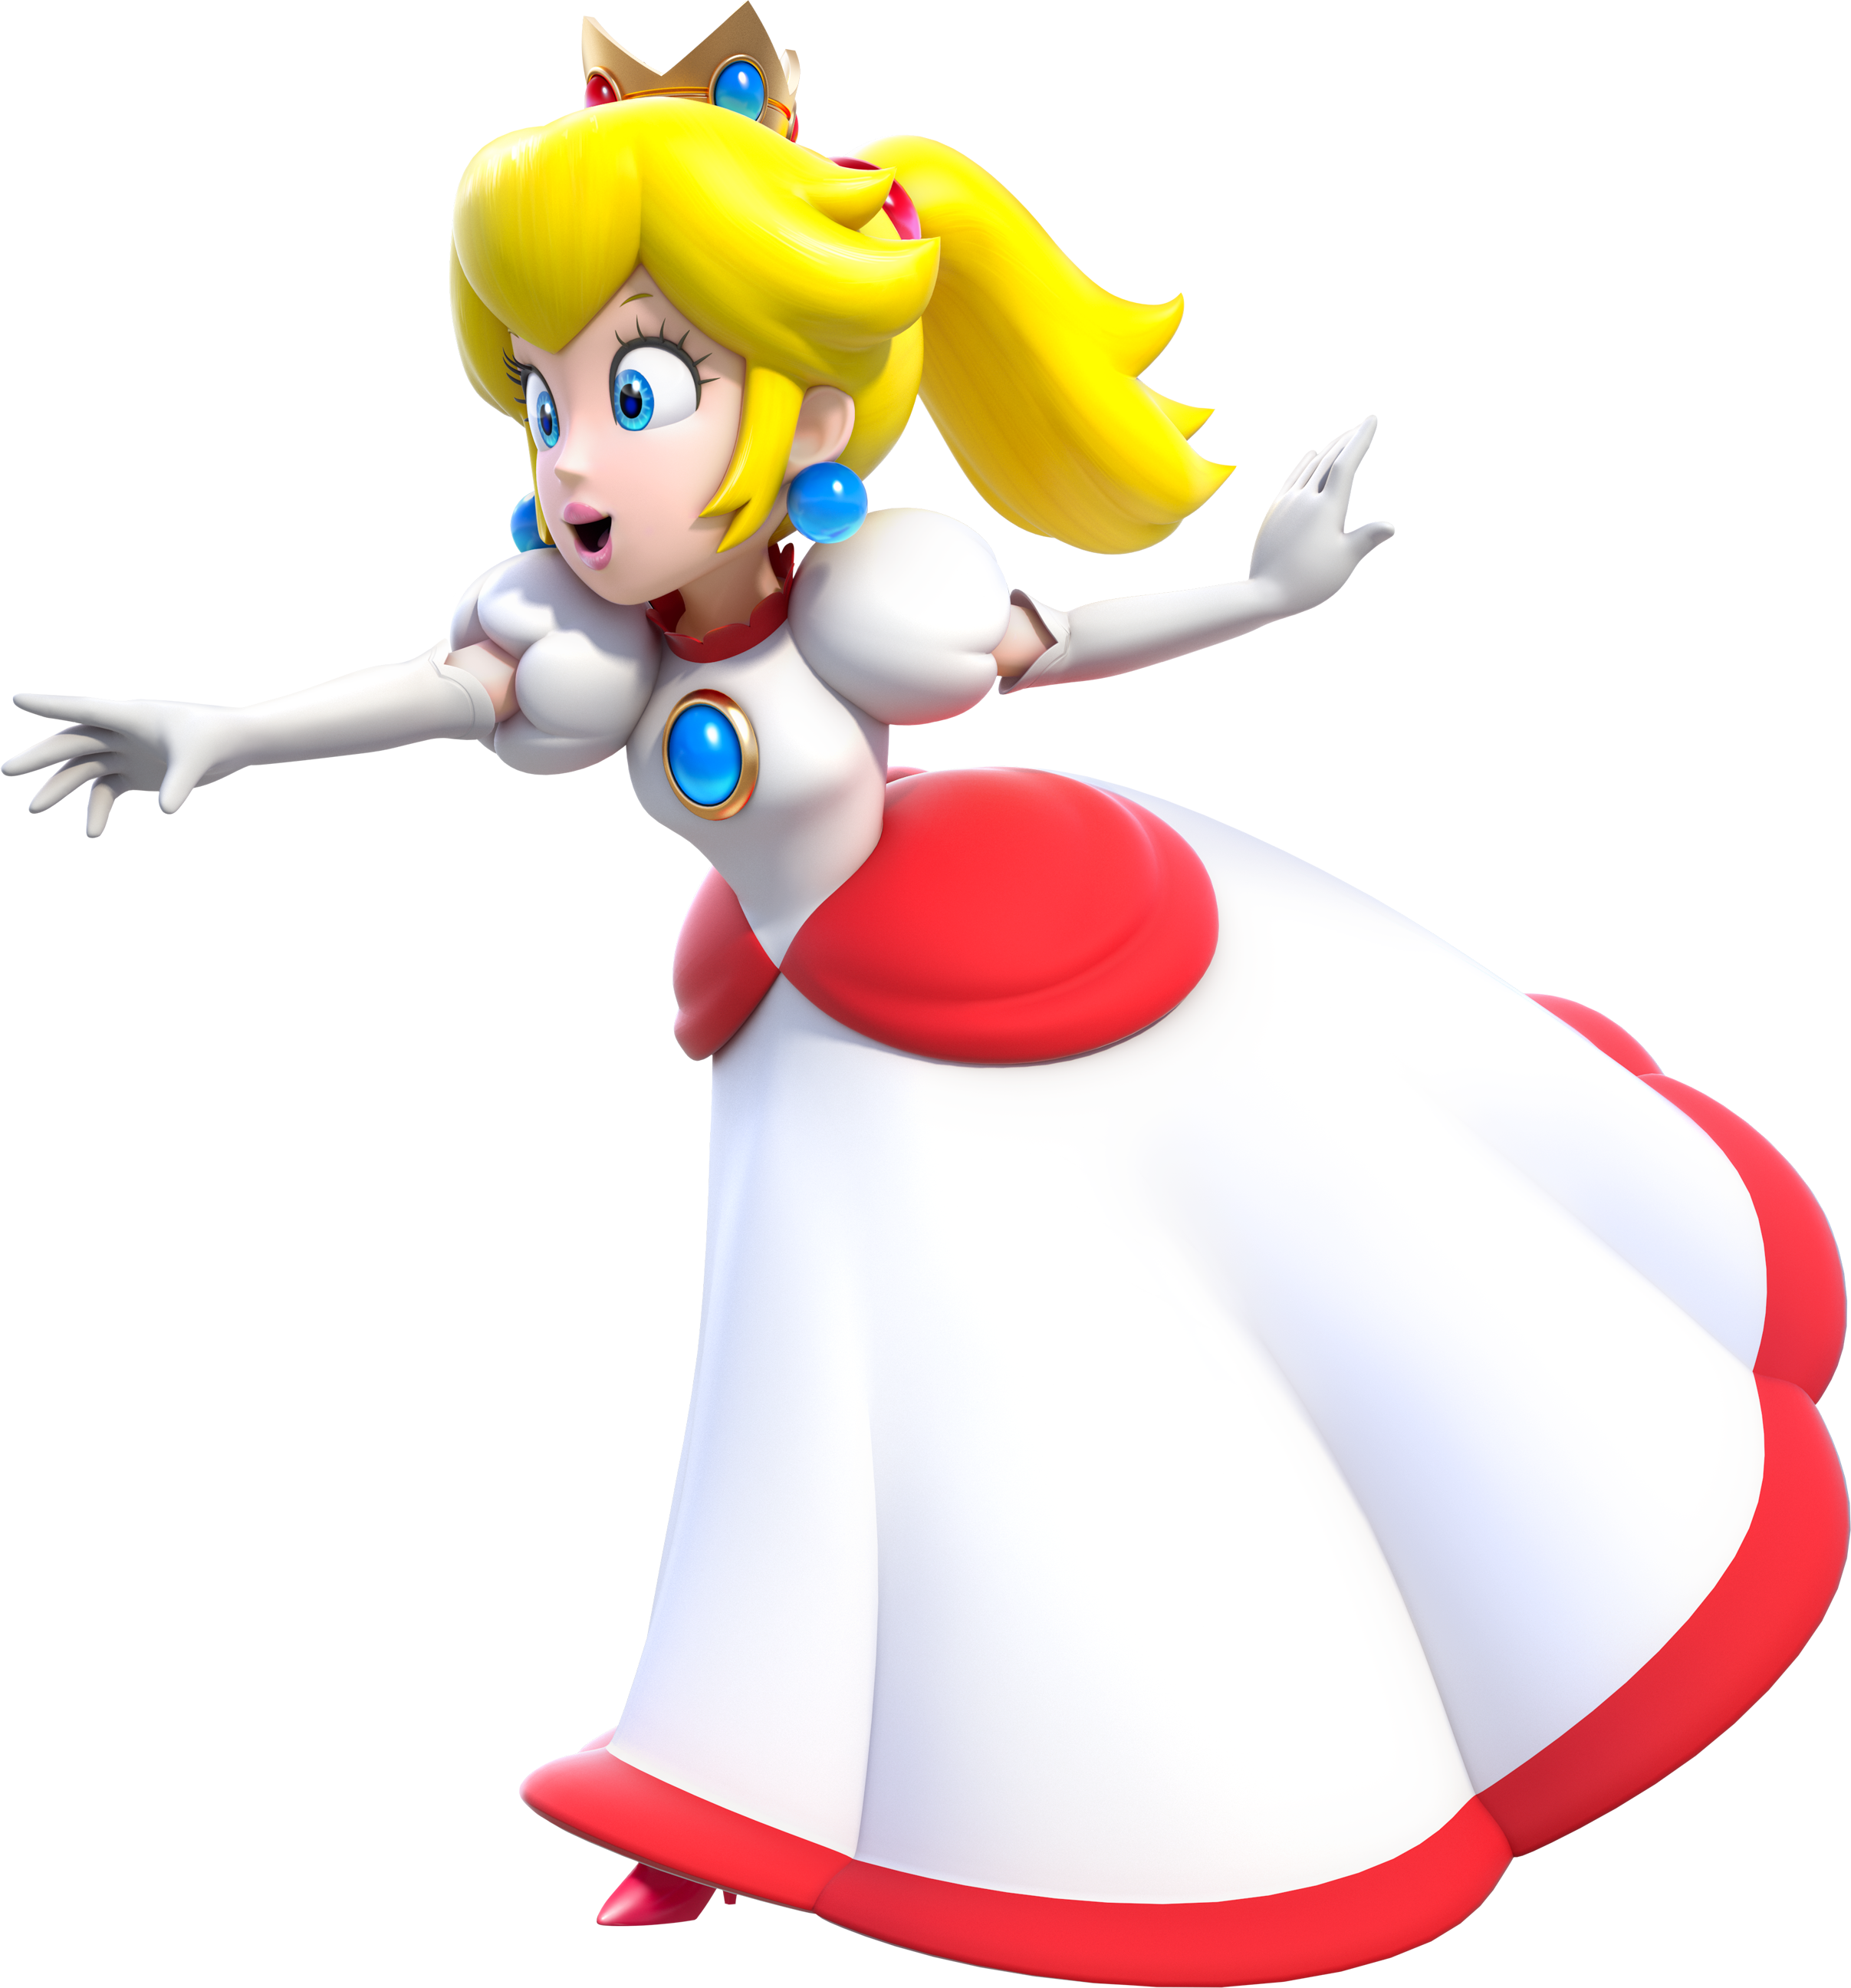 Princess peach videogameologists d i y projects to try - Princesse mario bros ...